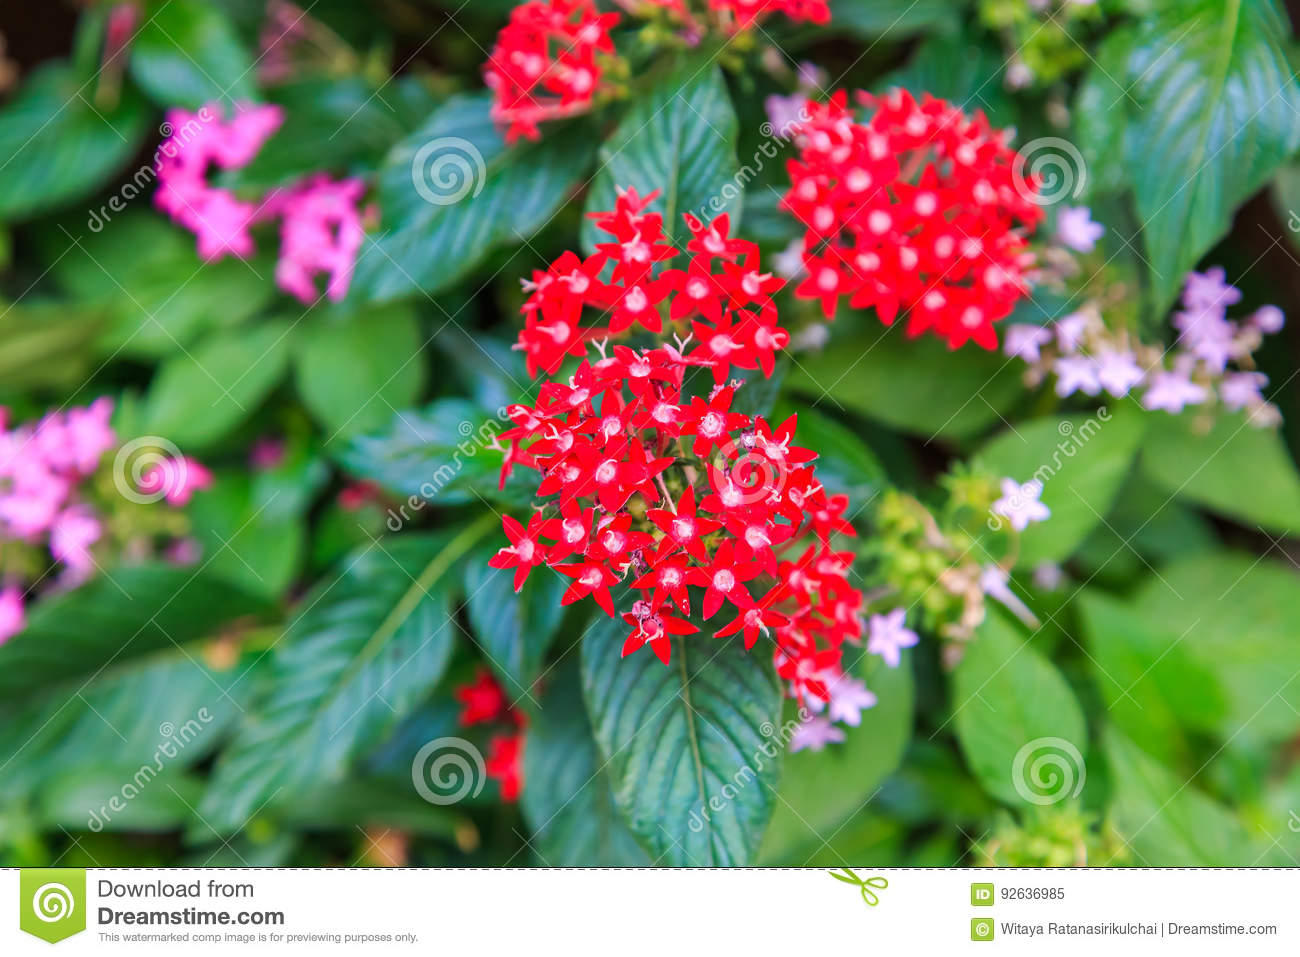 Pentas pink and red little star shaped flower stock image image download pentas pink and red little star shaped flower stock image image of blossom mightylinksfo